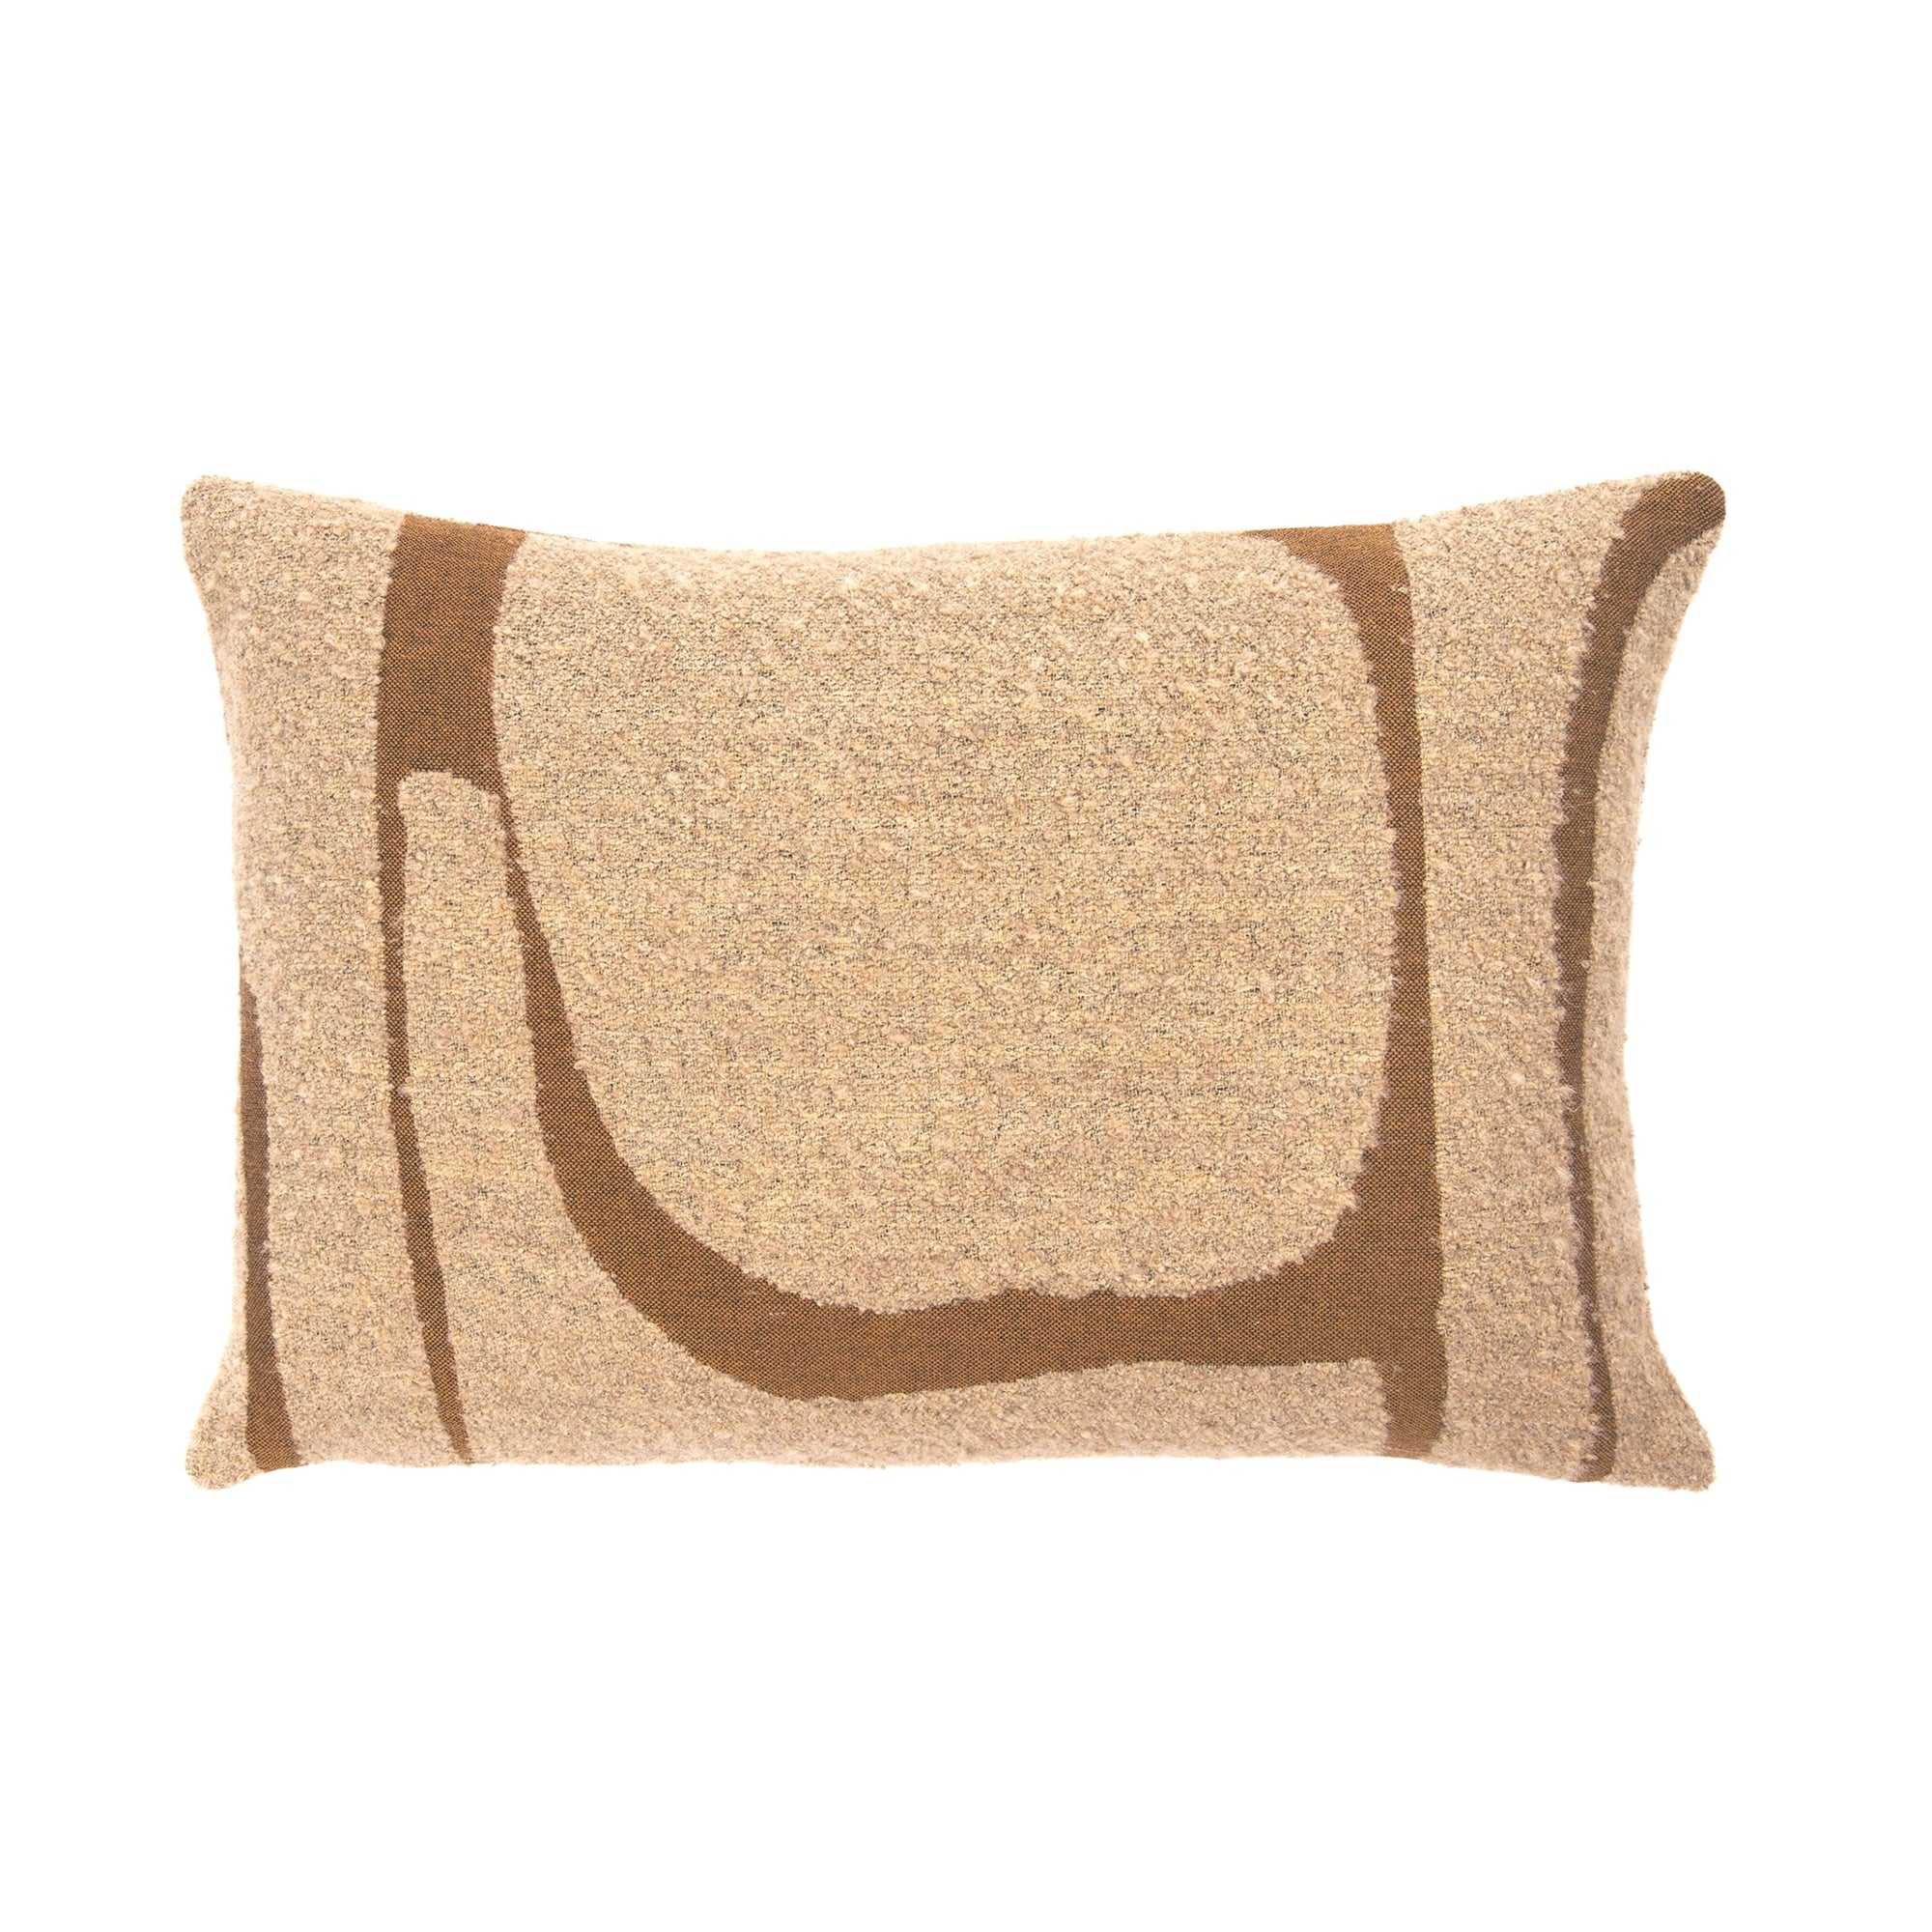 Avana Abstract cushion